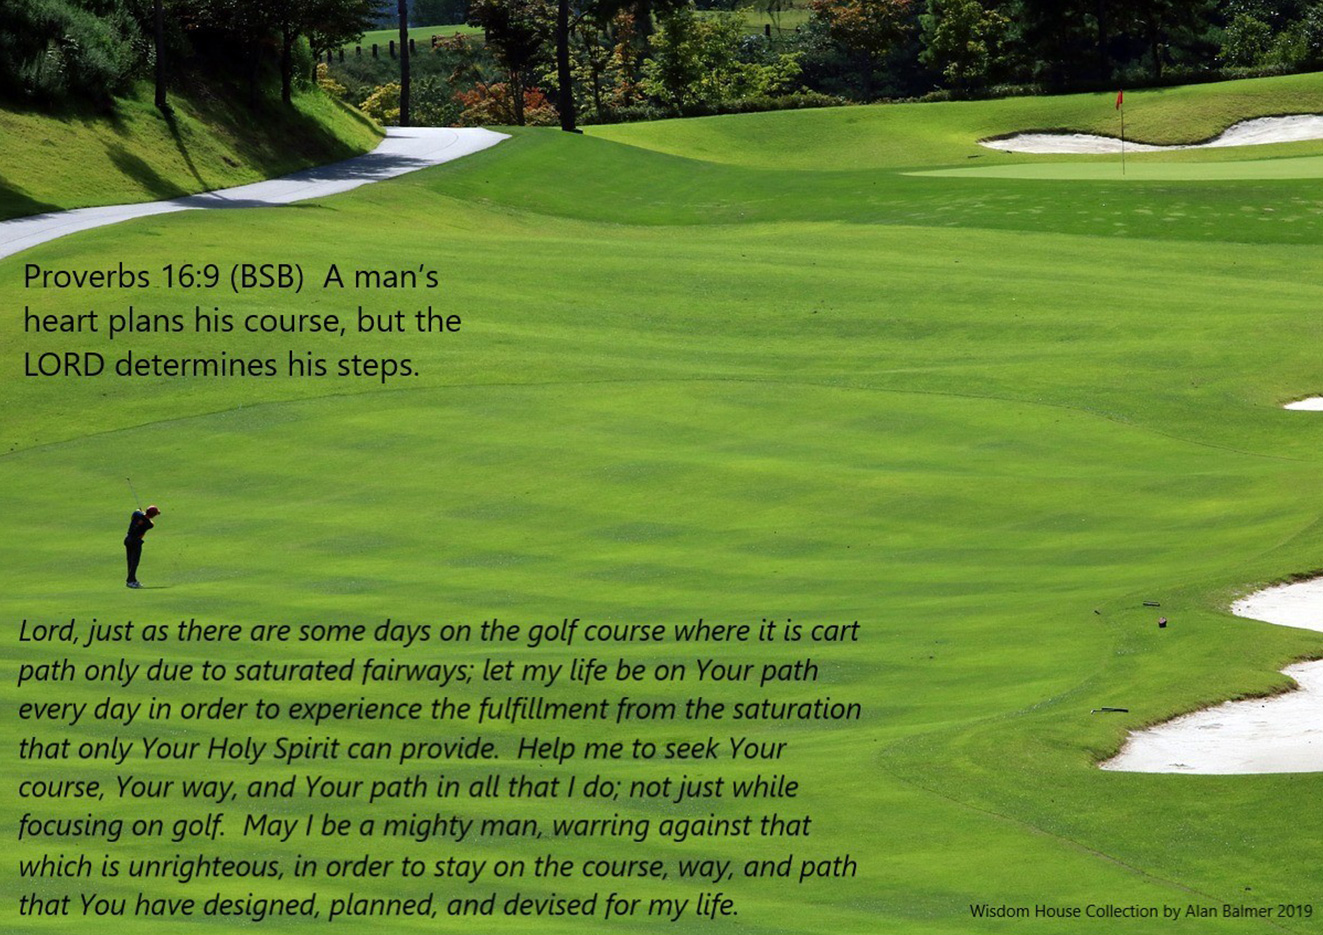 The Golfer's Prayer Based on Proverbs 16:9 -